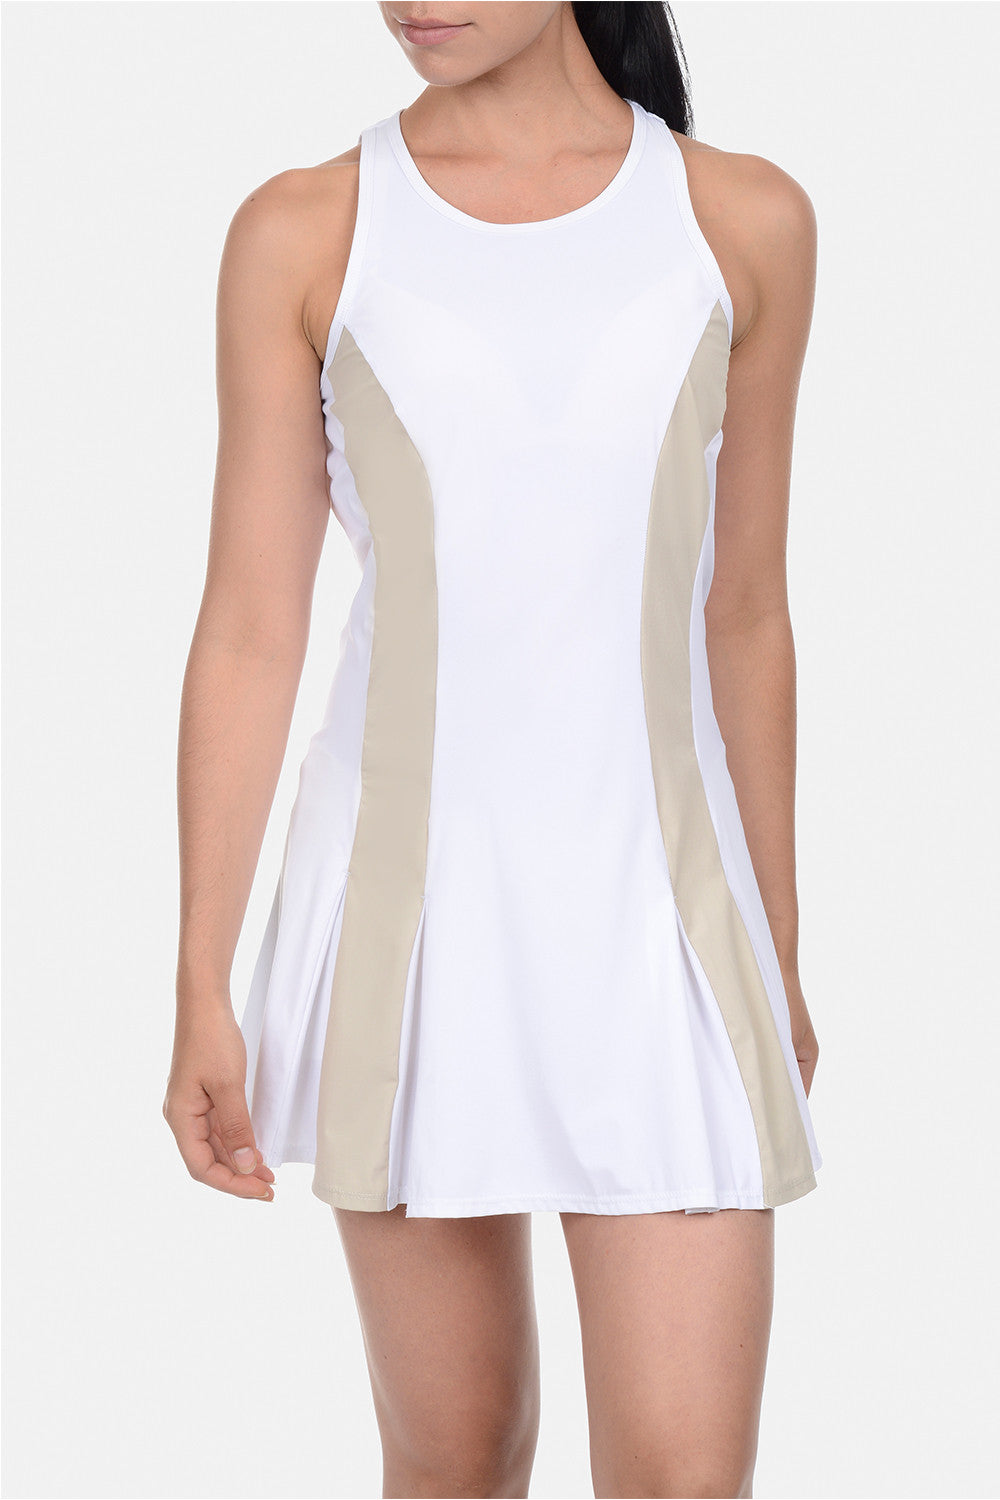 B Fit Racer Back Pleated Tennis Dress